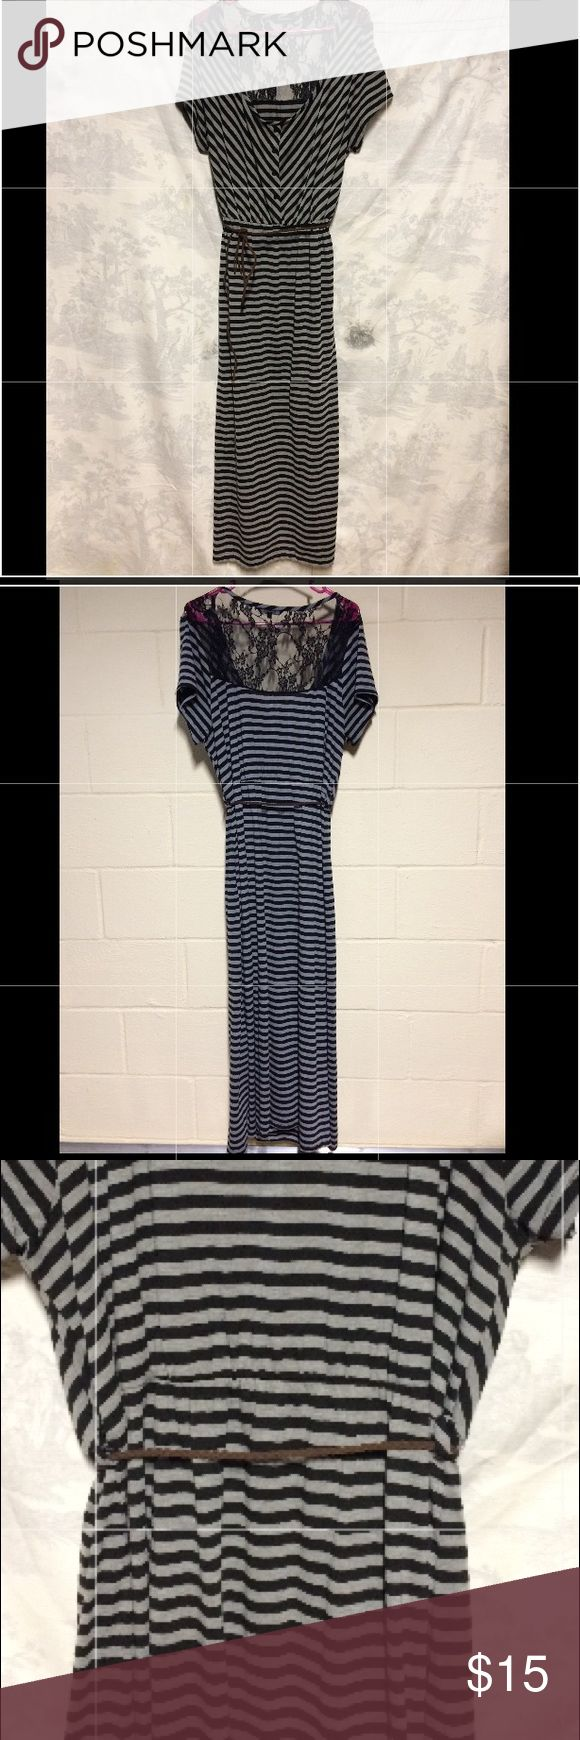 Just Love black and gray stripped maxi with lace Just Love black and gray stripped maxi dress with brown rope belt and lace detail to back/neck area. EUC. Size 3X. Dresses Maxi